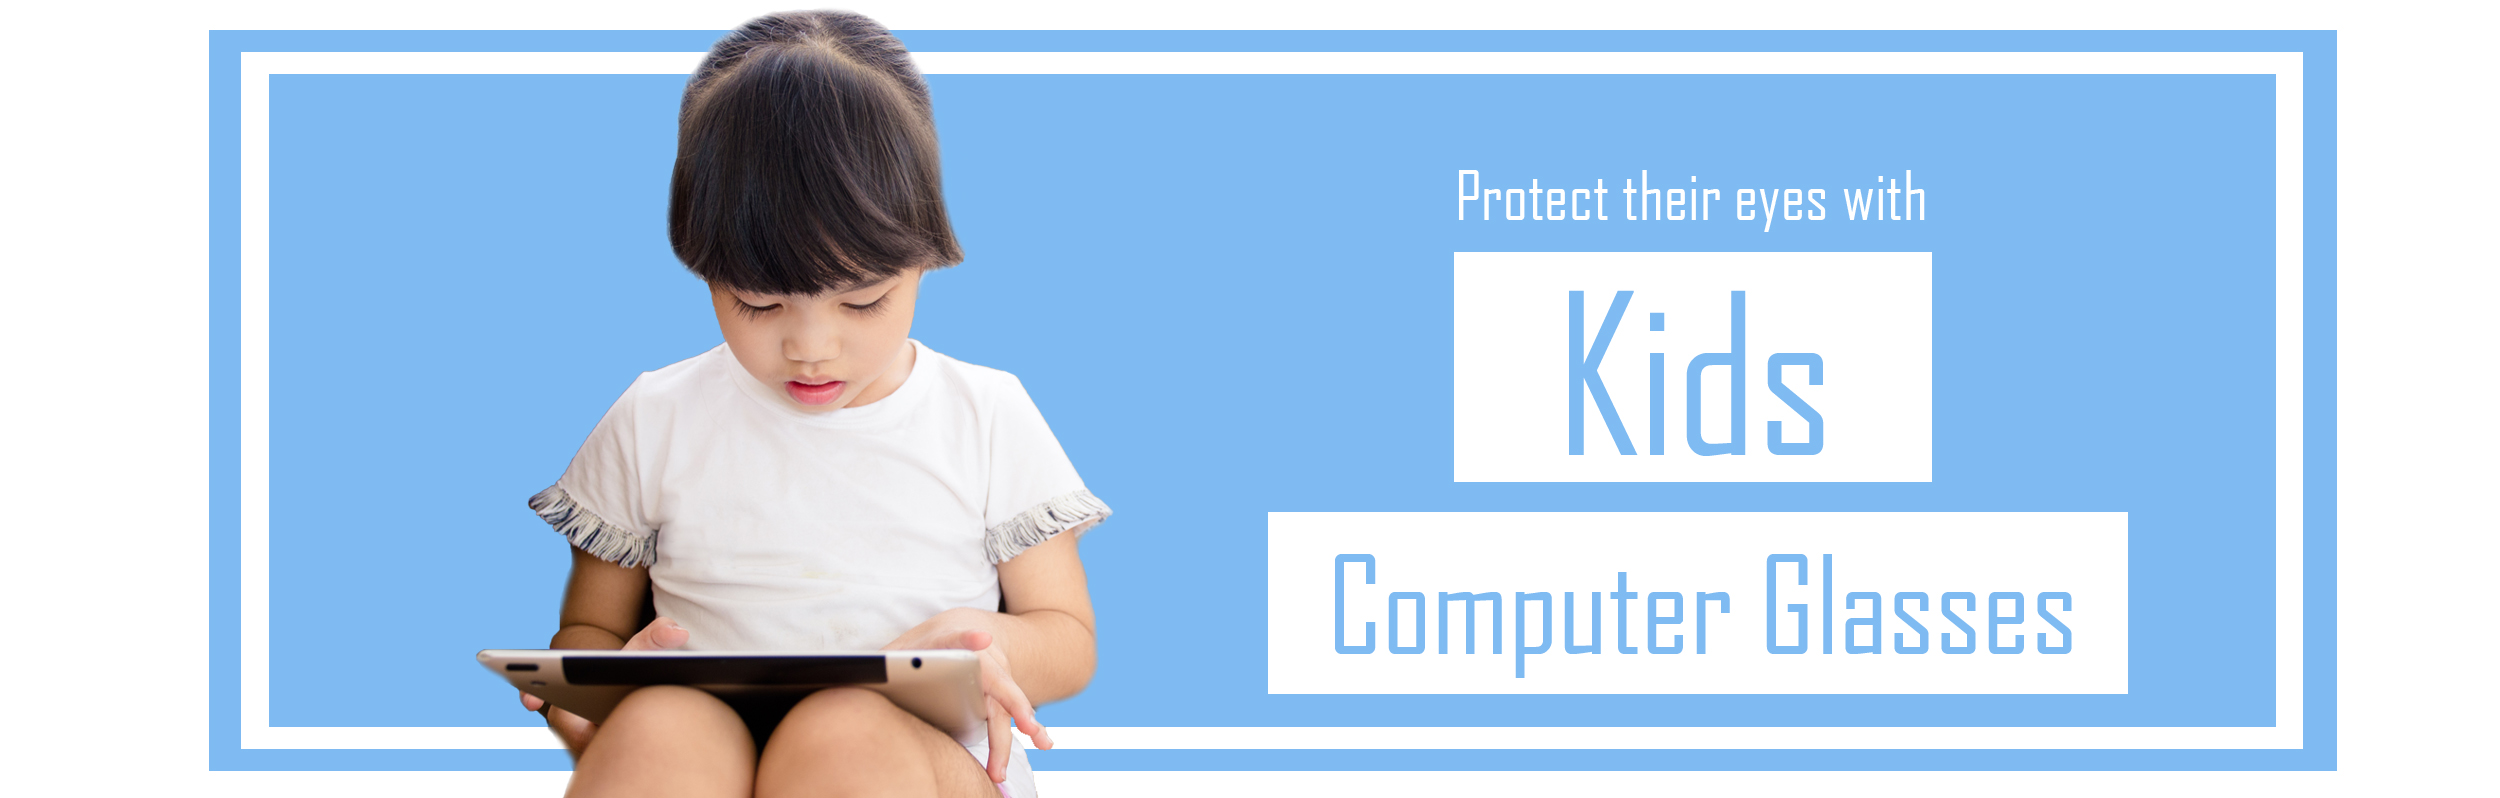 kidscomputerglassesbanner.jpg